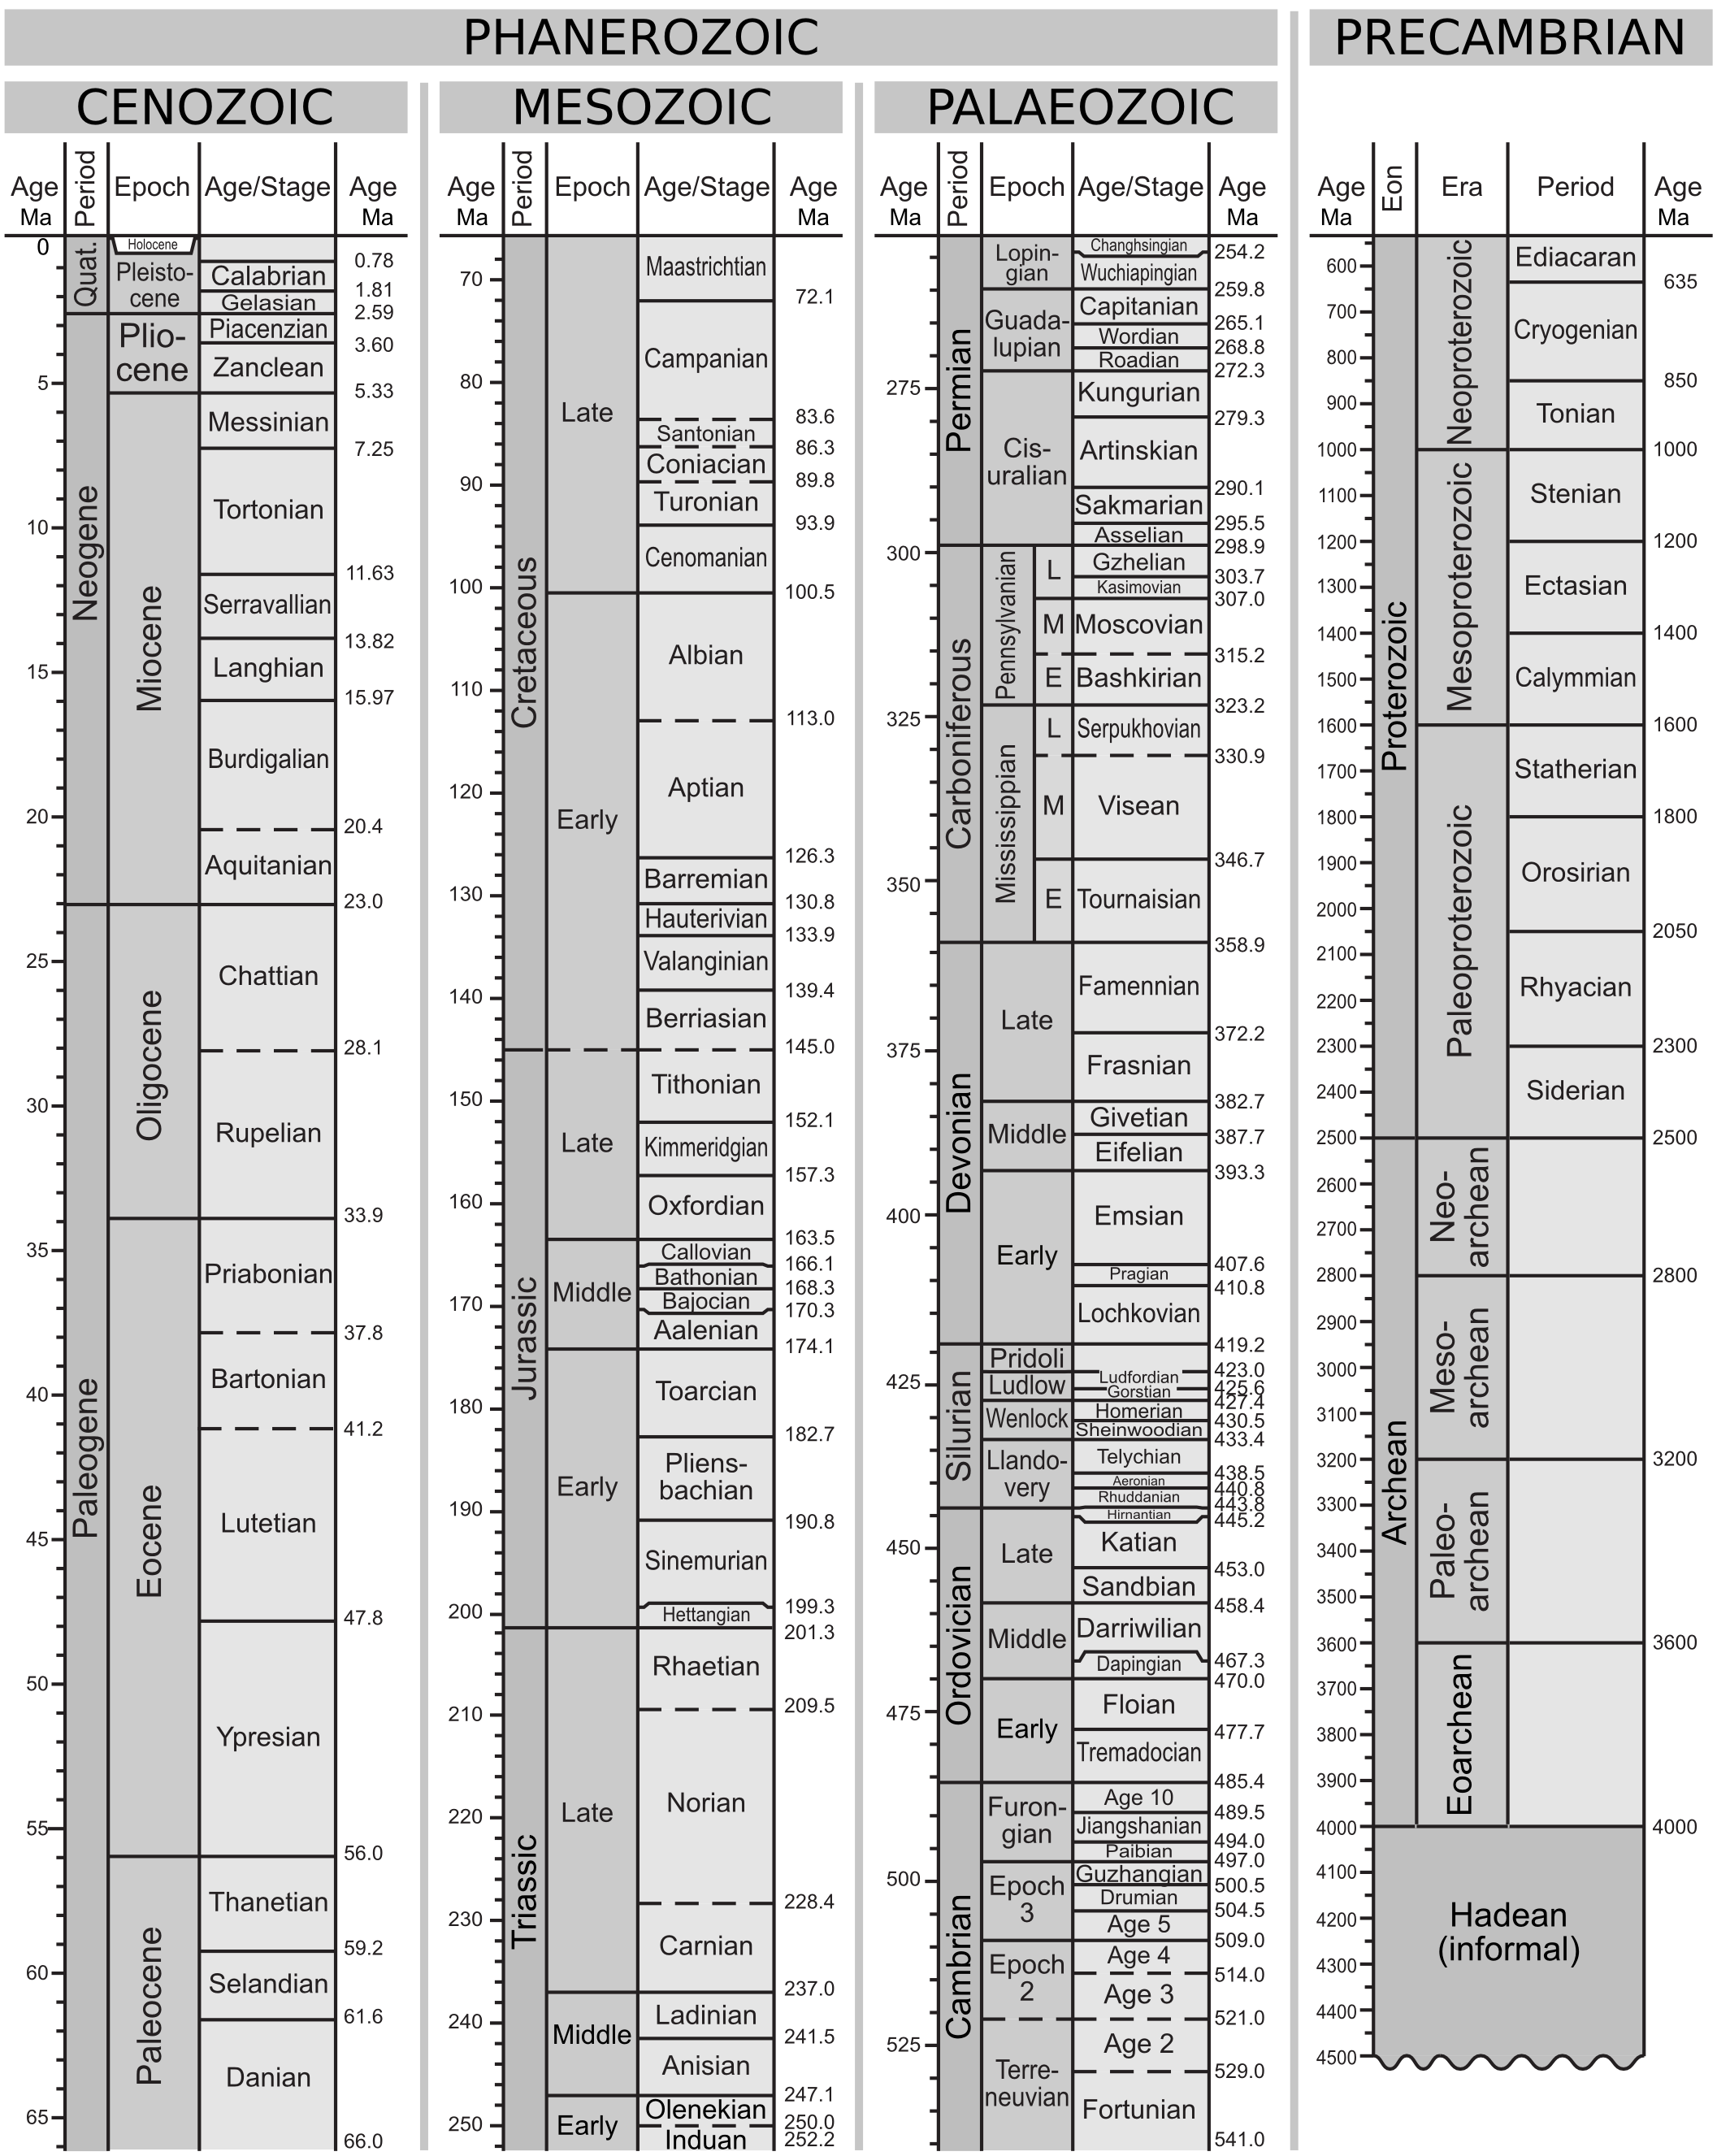 Figure 1. The Geologic Time Scale 2012.